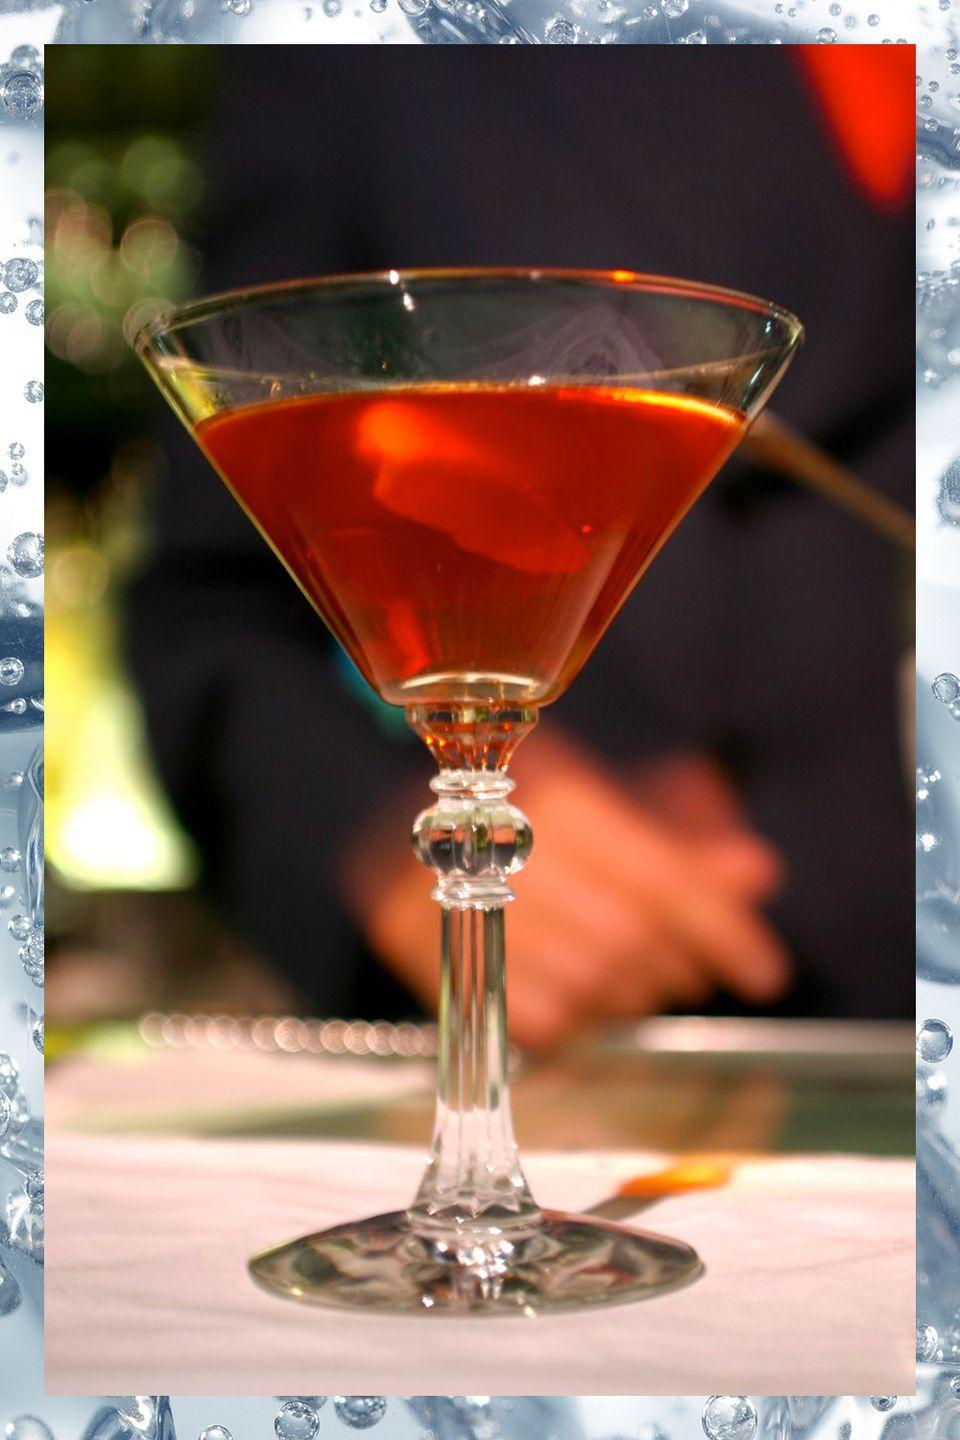 """<p>Not quite a Manhattan and not quite a Martini, the Martinez uses """"Old Tom,"""" a slightly sweeter style of gin that debuted in the mid-1800s. For the authentic taste, ask for it by name.</p><p>- 1.5 oz Old Tom gin<br>- 1.5 oz sweet vermouth<br>- .25 oz Luxardo maraschino liqueur<br>- 2 dashes Angostura or orange bitters</p><p><em>Stir ingredients in a mixing glass with ice. Strain into chilled <a href=""""https://www.amazon.com/Riedel-VINUM-Martini-Glasses-Set/dp/B000W06570/?tag=syn-yahoo-20&ascsubtag=%5Bartid%7C10067.g.13092298%5Bsrc%7Cyahoo-us"""" rel=""""nofollow noopener"""" target=""""_blank"""" data-ylk=""""slk:martini glass"""" class=""""link rapid-noclick-resp"""">martini glass</a> or <a href=""""https://www.amazon.com/Libbey-Perception-Cocktail-Coupe-Glass/dp/B009XD642S?tag=syn-yahoo-20&ascsubtag=%5Bartid%7C10067.g.13092298%5Bsrc%7Cyahoo-us"""" rel=""""nofollow noopener"""" target=""""_blank"""" data-ylk=""""slk:cocktail coupe"""" class=""""link rapid-noclick-resp"""">cocktail coupe</a>.</em><br></p><p><strong>More:</strong> <a href=""""http://www.townandcountrymag.com/leisure/drinks/g2171/gin-cocktail-recipes/"""" rel=""""nofollow noopener"""" target=""""_blank"""" data-ylk=""""slk:Essential Gin Cocktails"""" class=""""link rapid-noclick-resp"""">Essential Gin Cocktails</a><br></p>"""